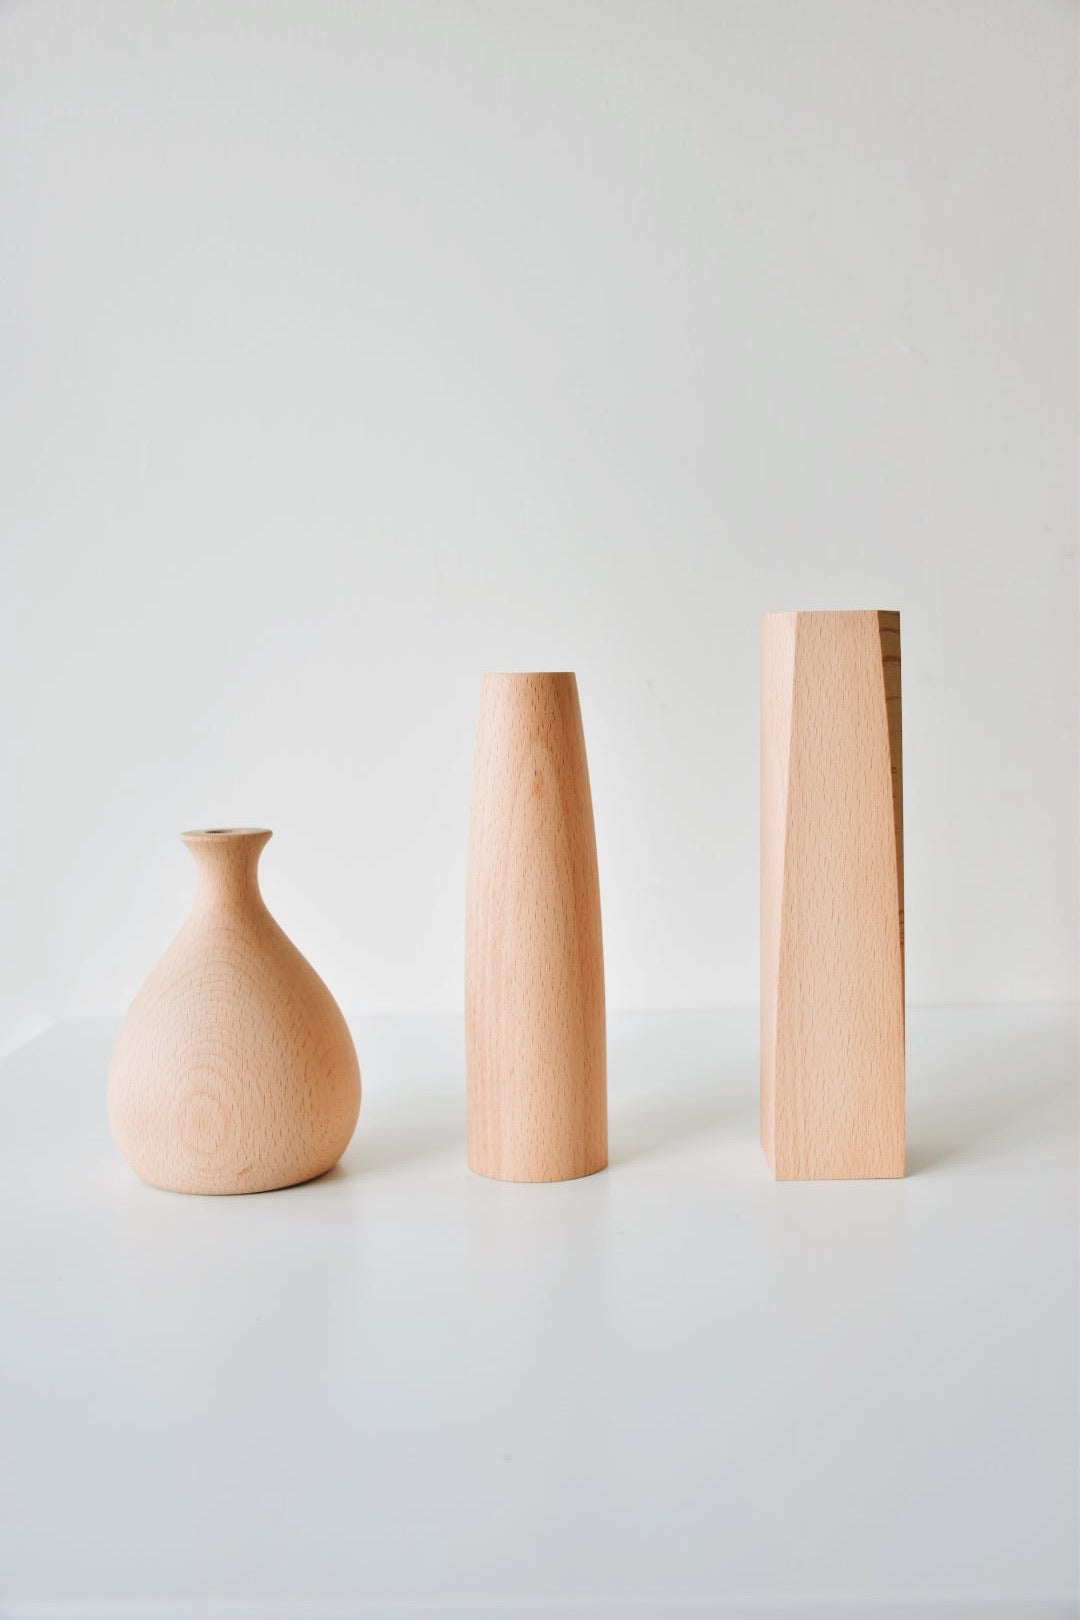 Wooden Vases - Hiatus Home